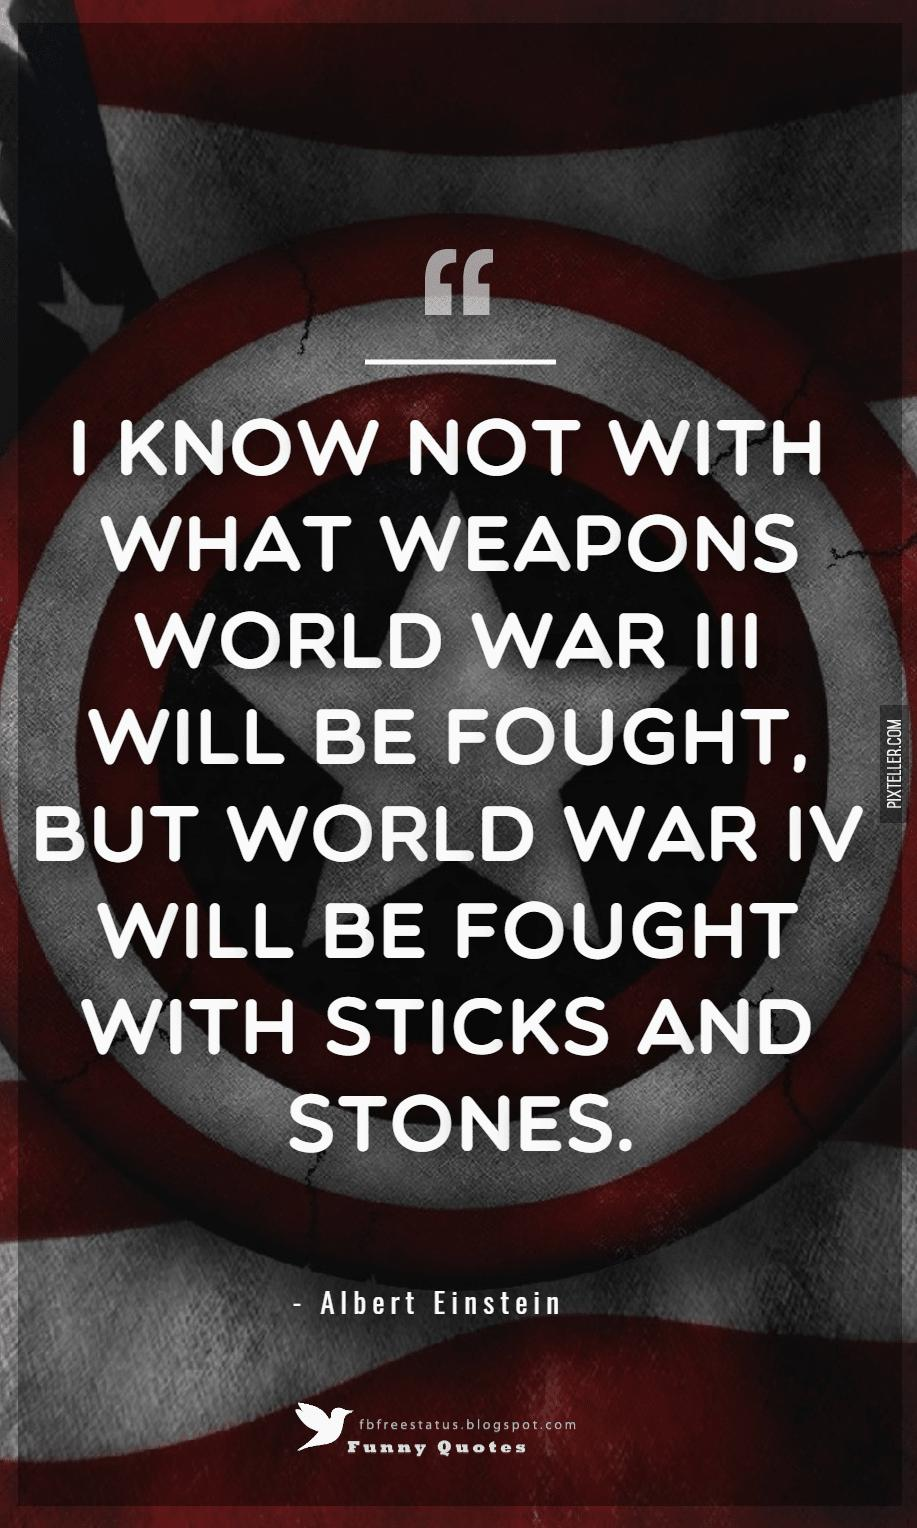 I know not with what weapons World War III will be fought, but World War IV will be fought with sticks and stones. ― Albert Einstein